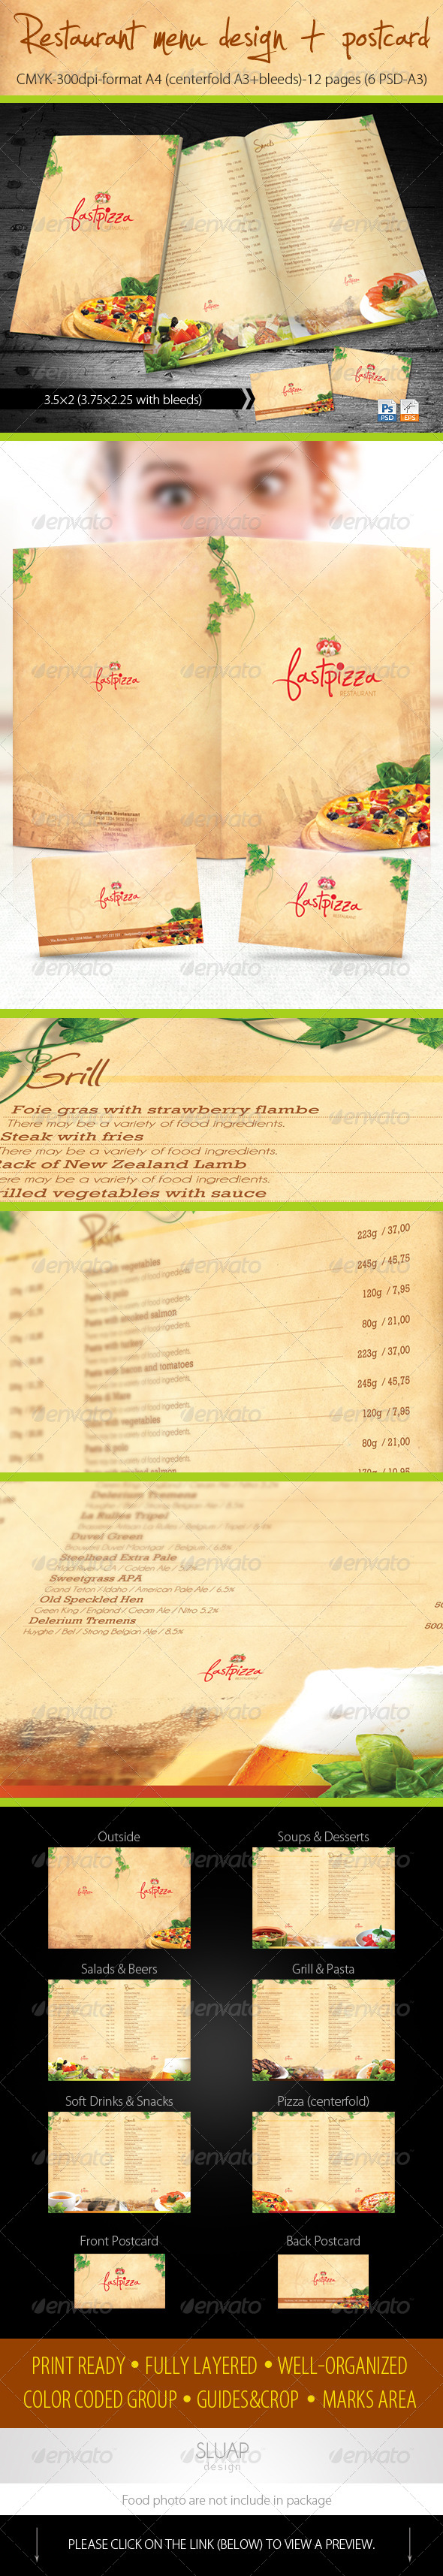 Restaurant Menu Design + Postcard - Food Menus Print Templates